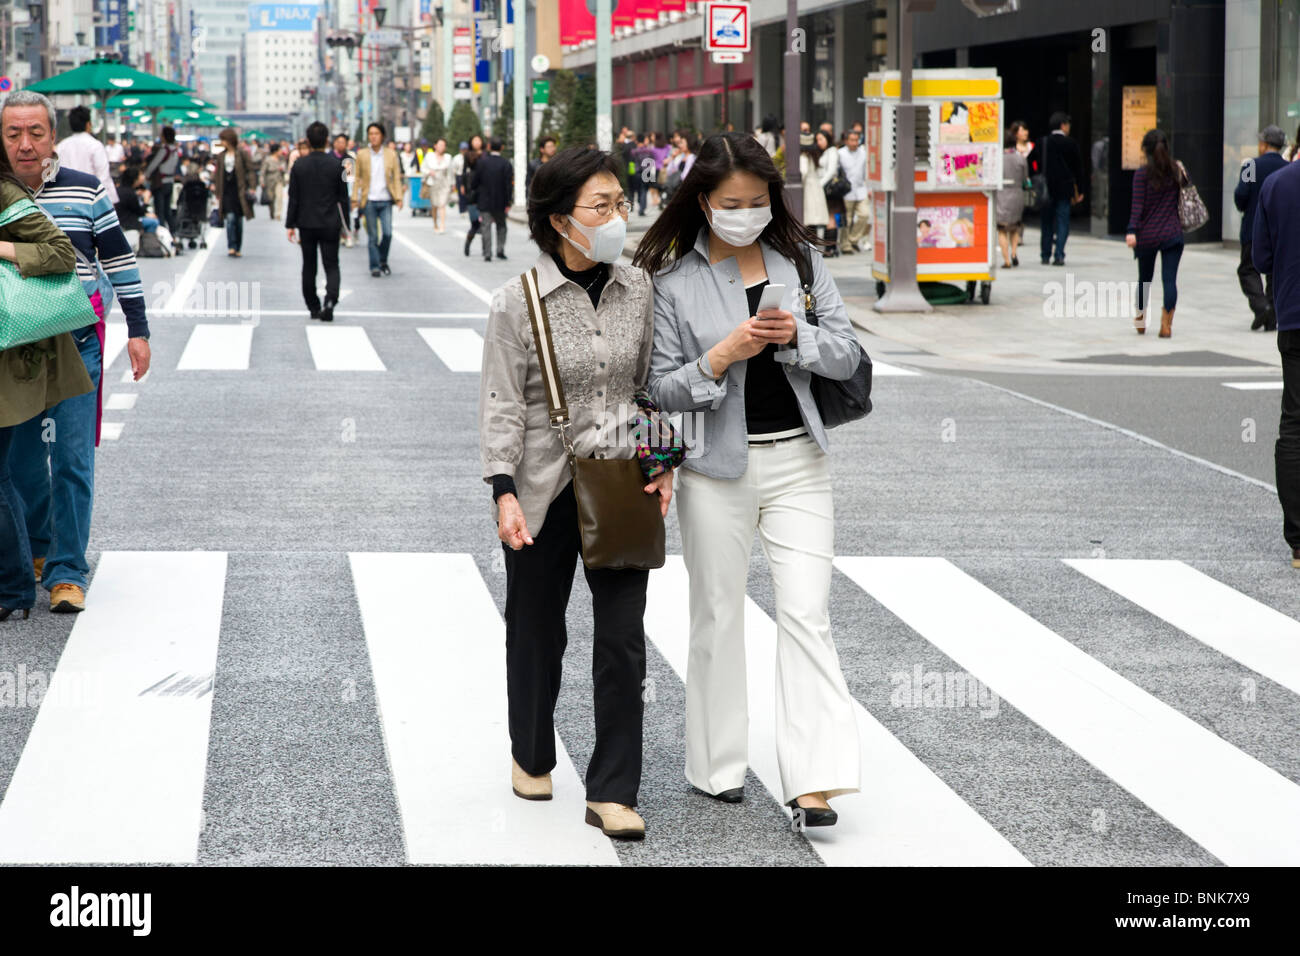 Women wearing protective face masks in Chuo-dori in Ginza 4-chome, Tokyo, Japan - Stock Image